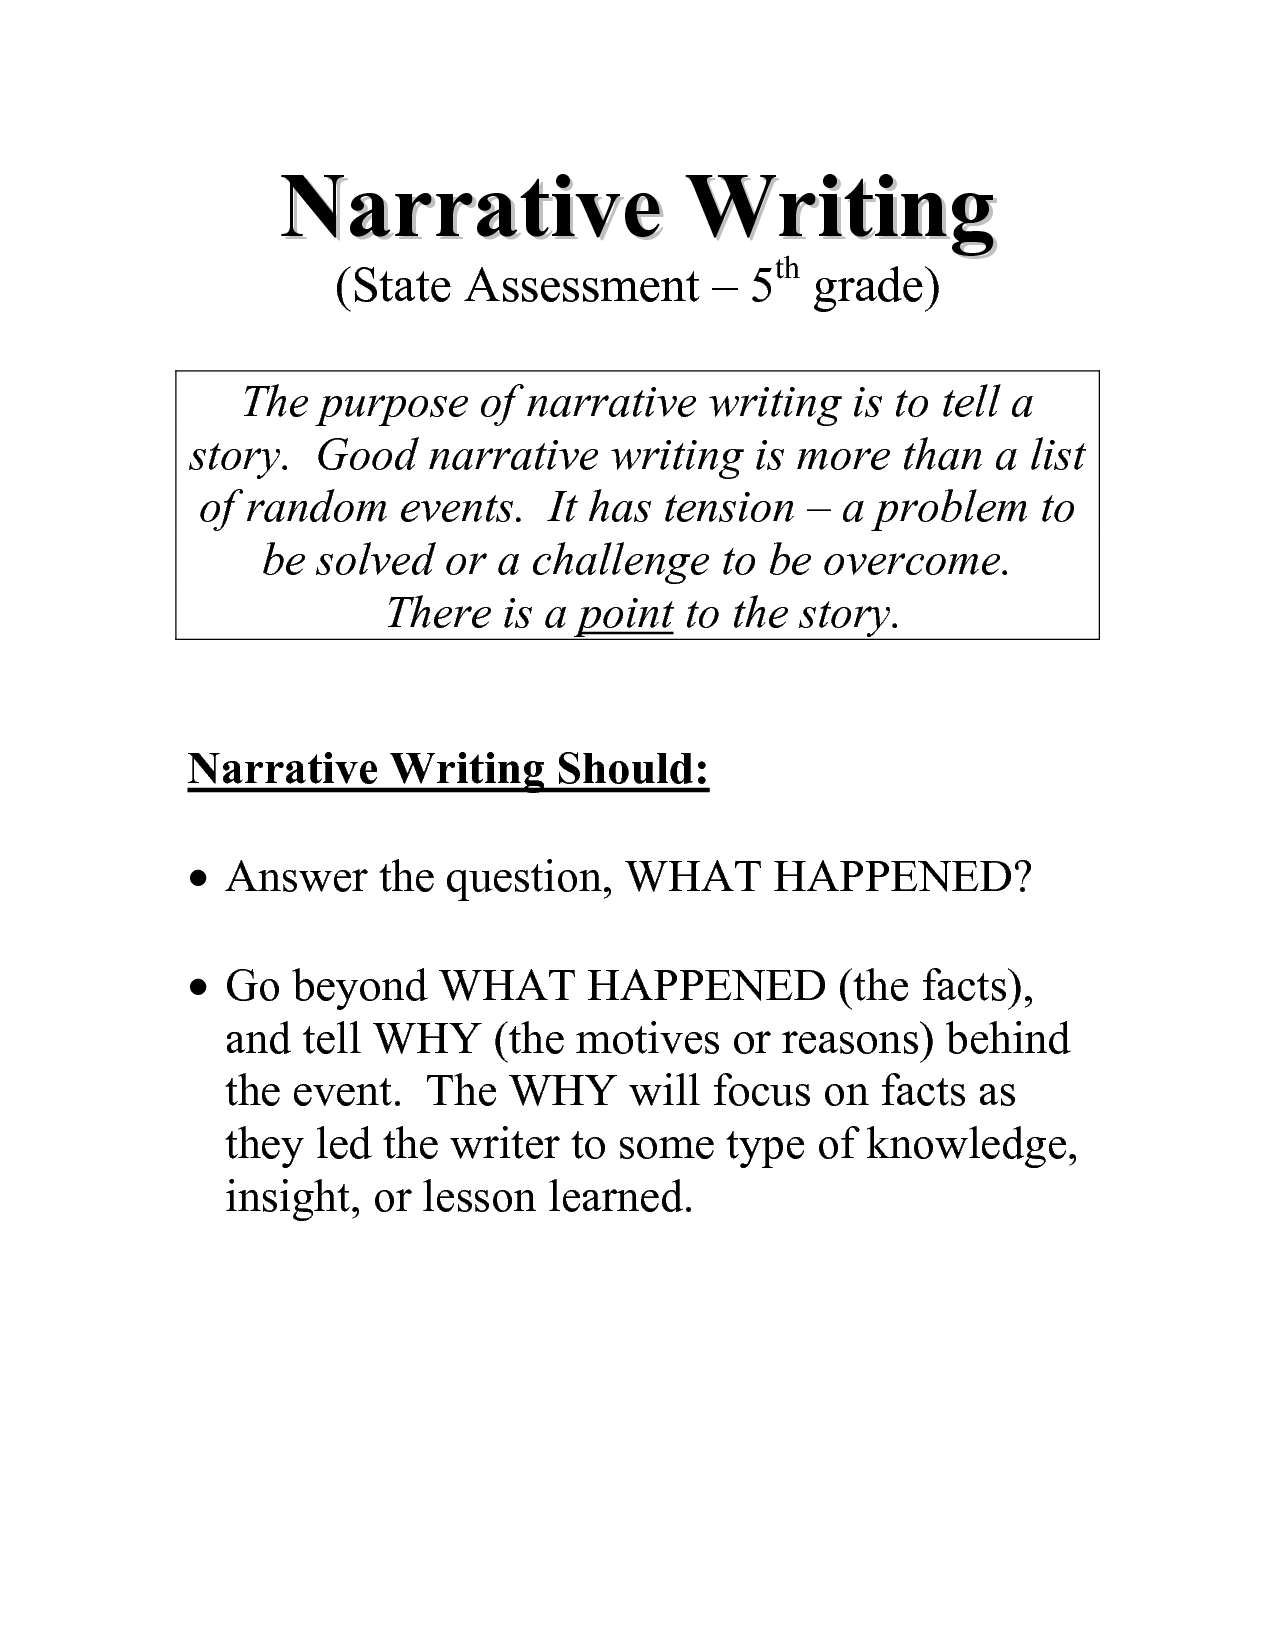 004 Essay Example Narrative Unbelievable Ideas Topics 6th Grade For College Students High School Full